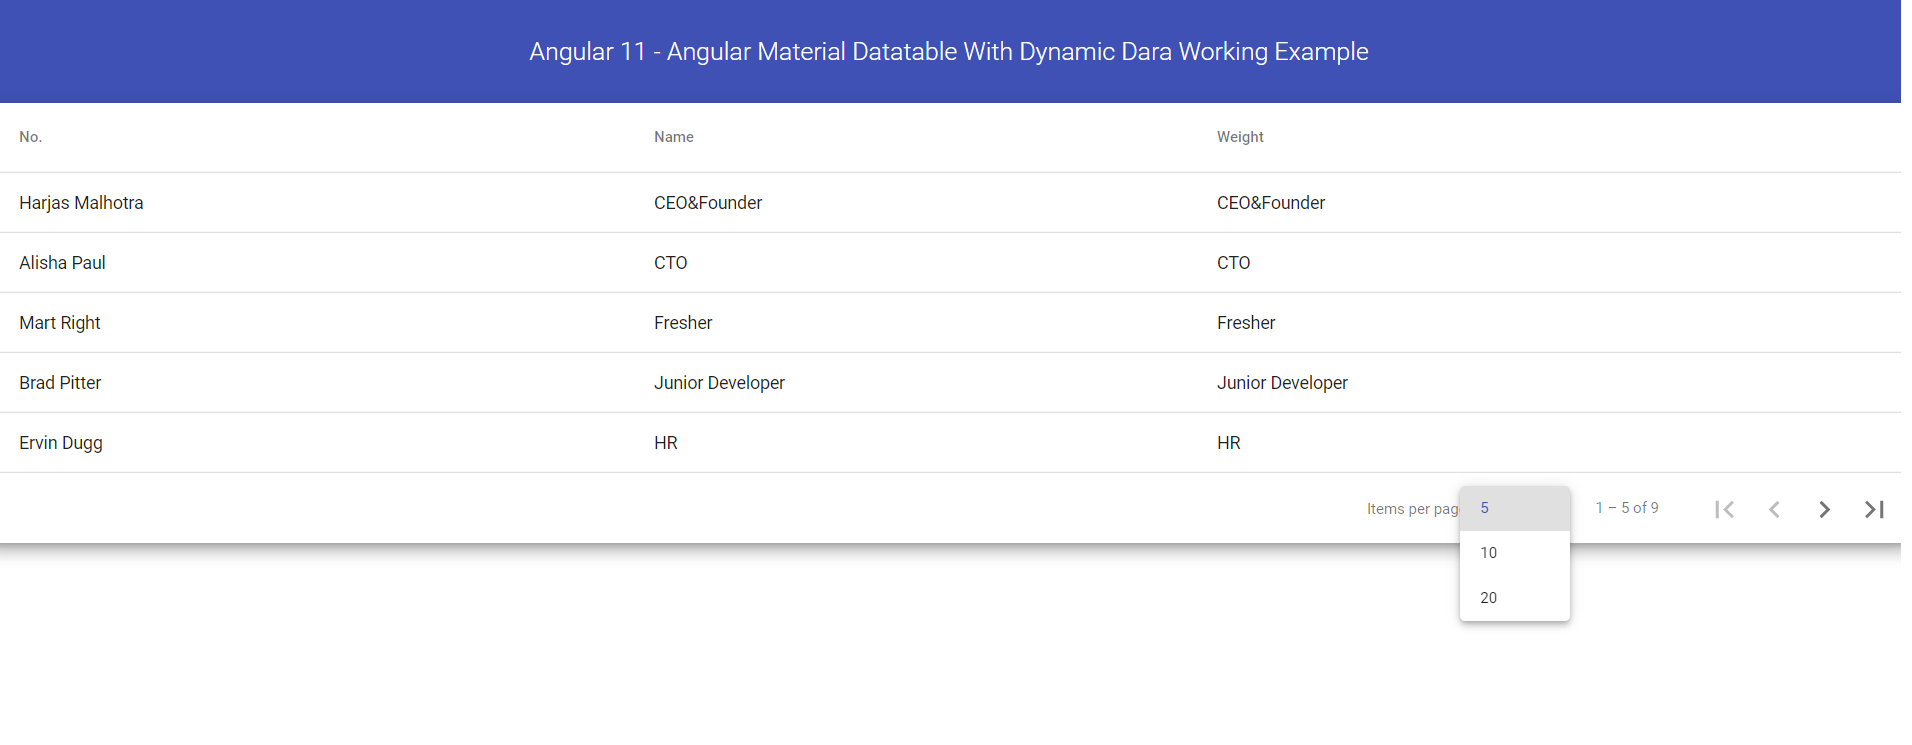 Angular 11 - Angular Material Data table with Dynamic Data